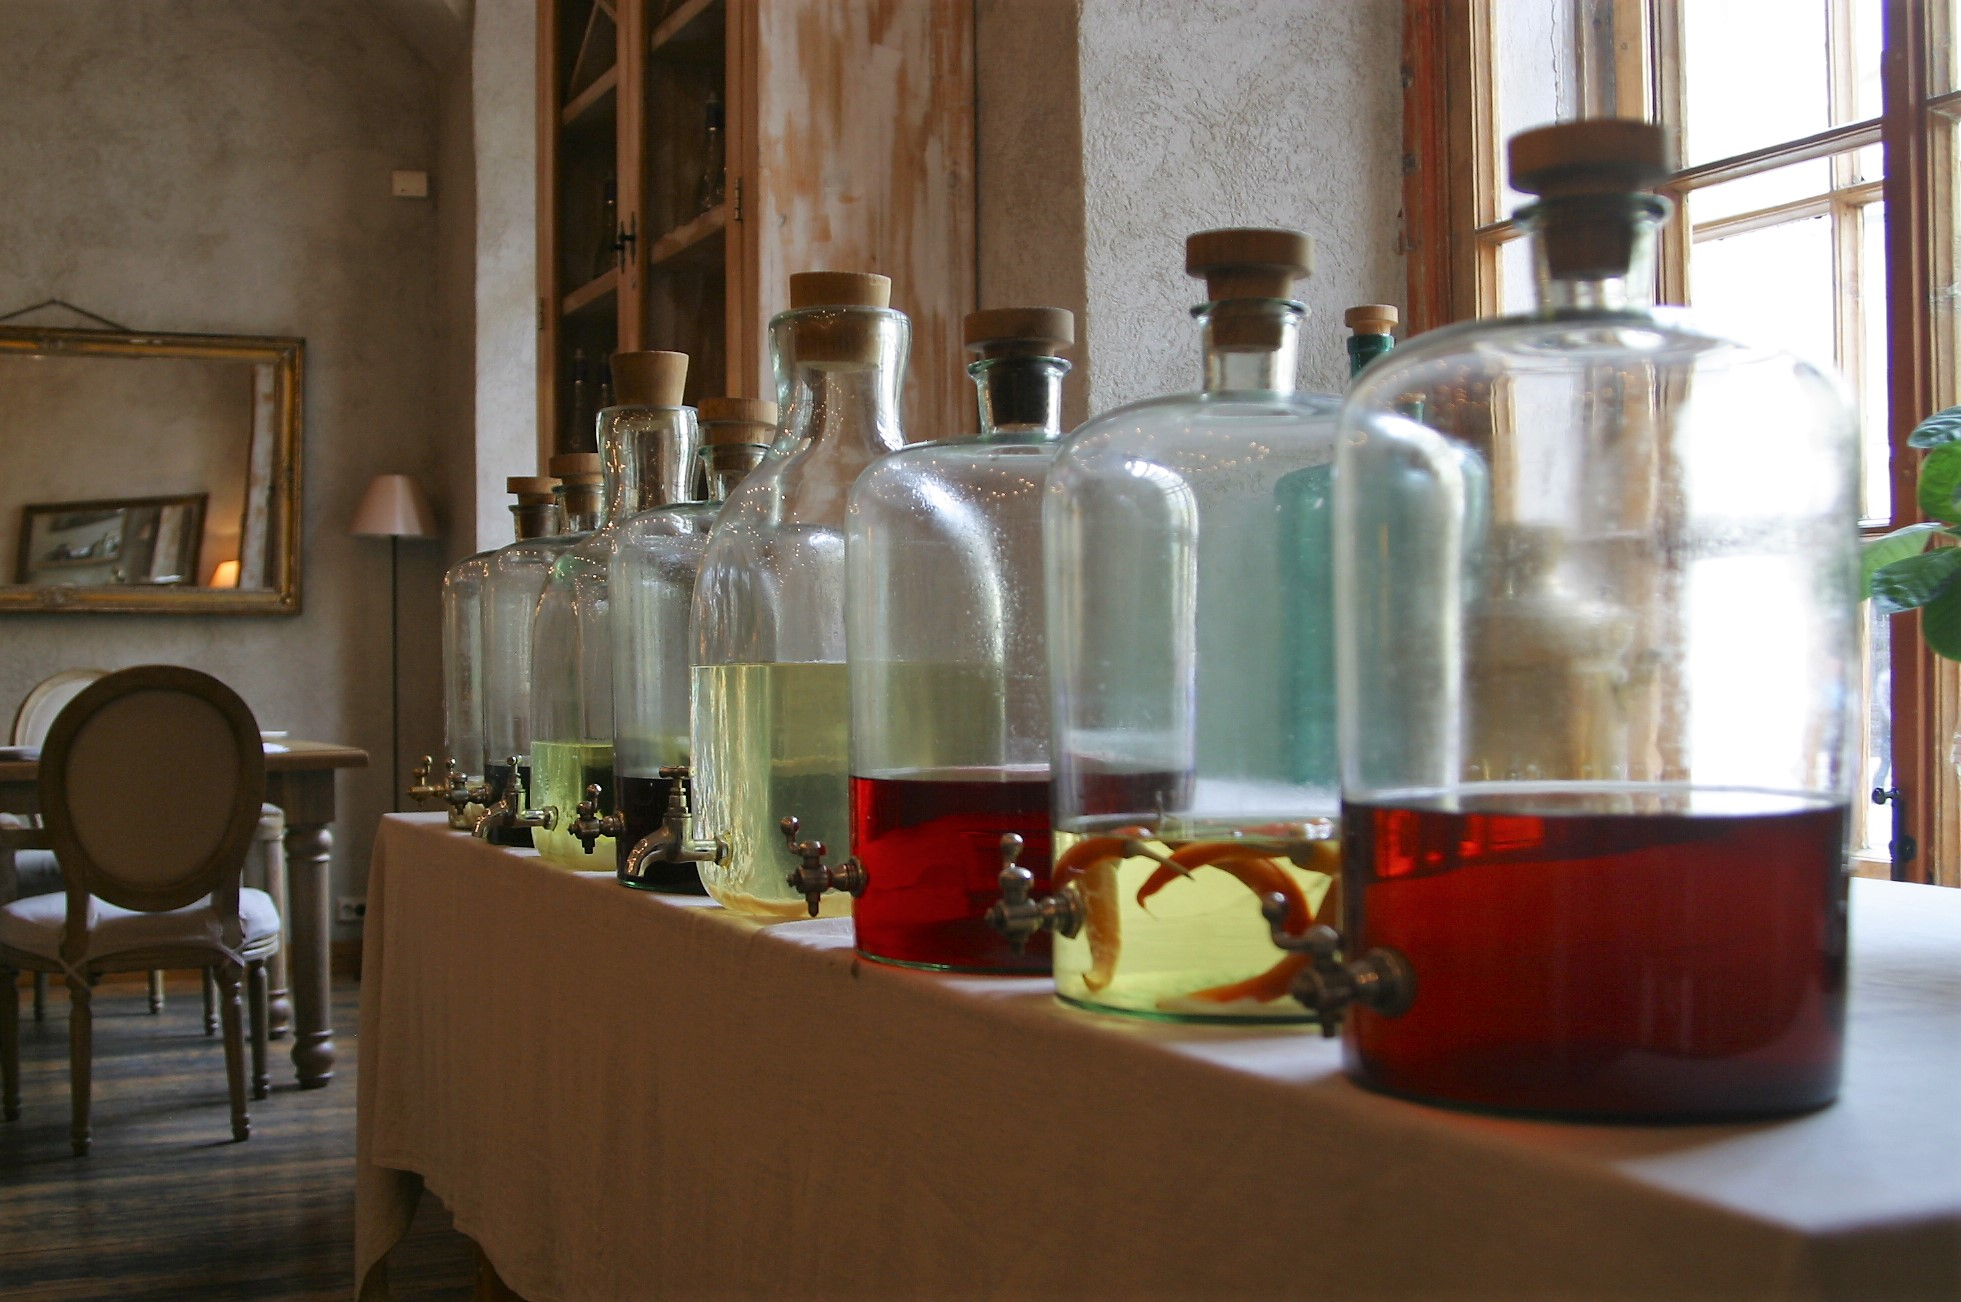 An array of homemade flavored vodkas